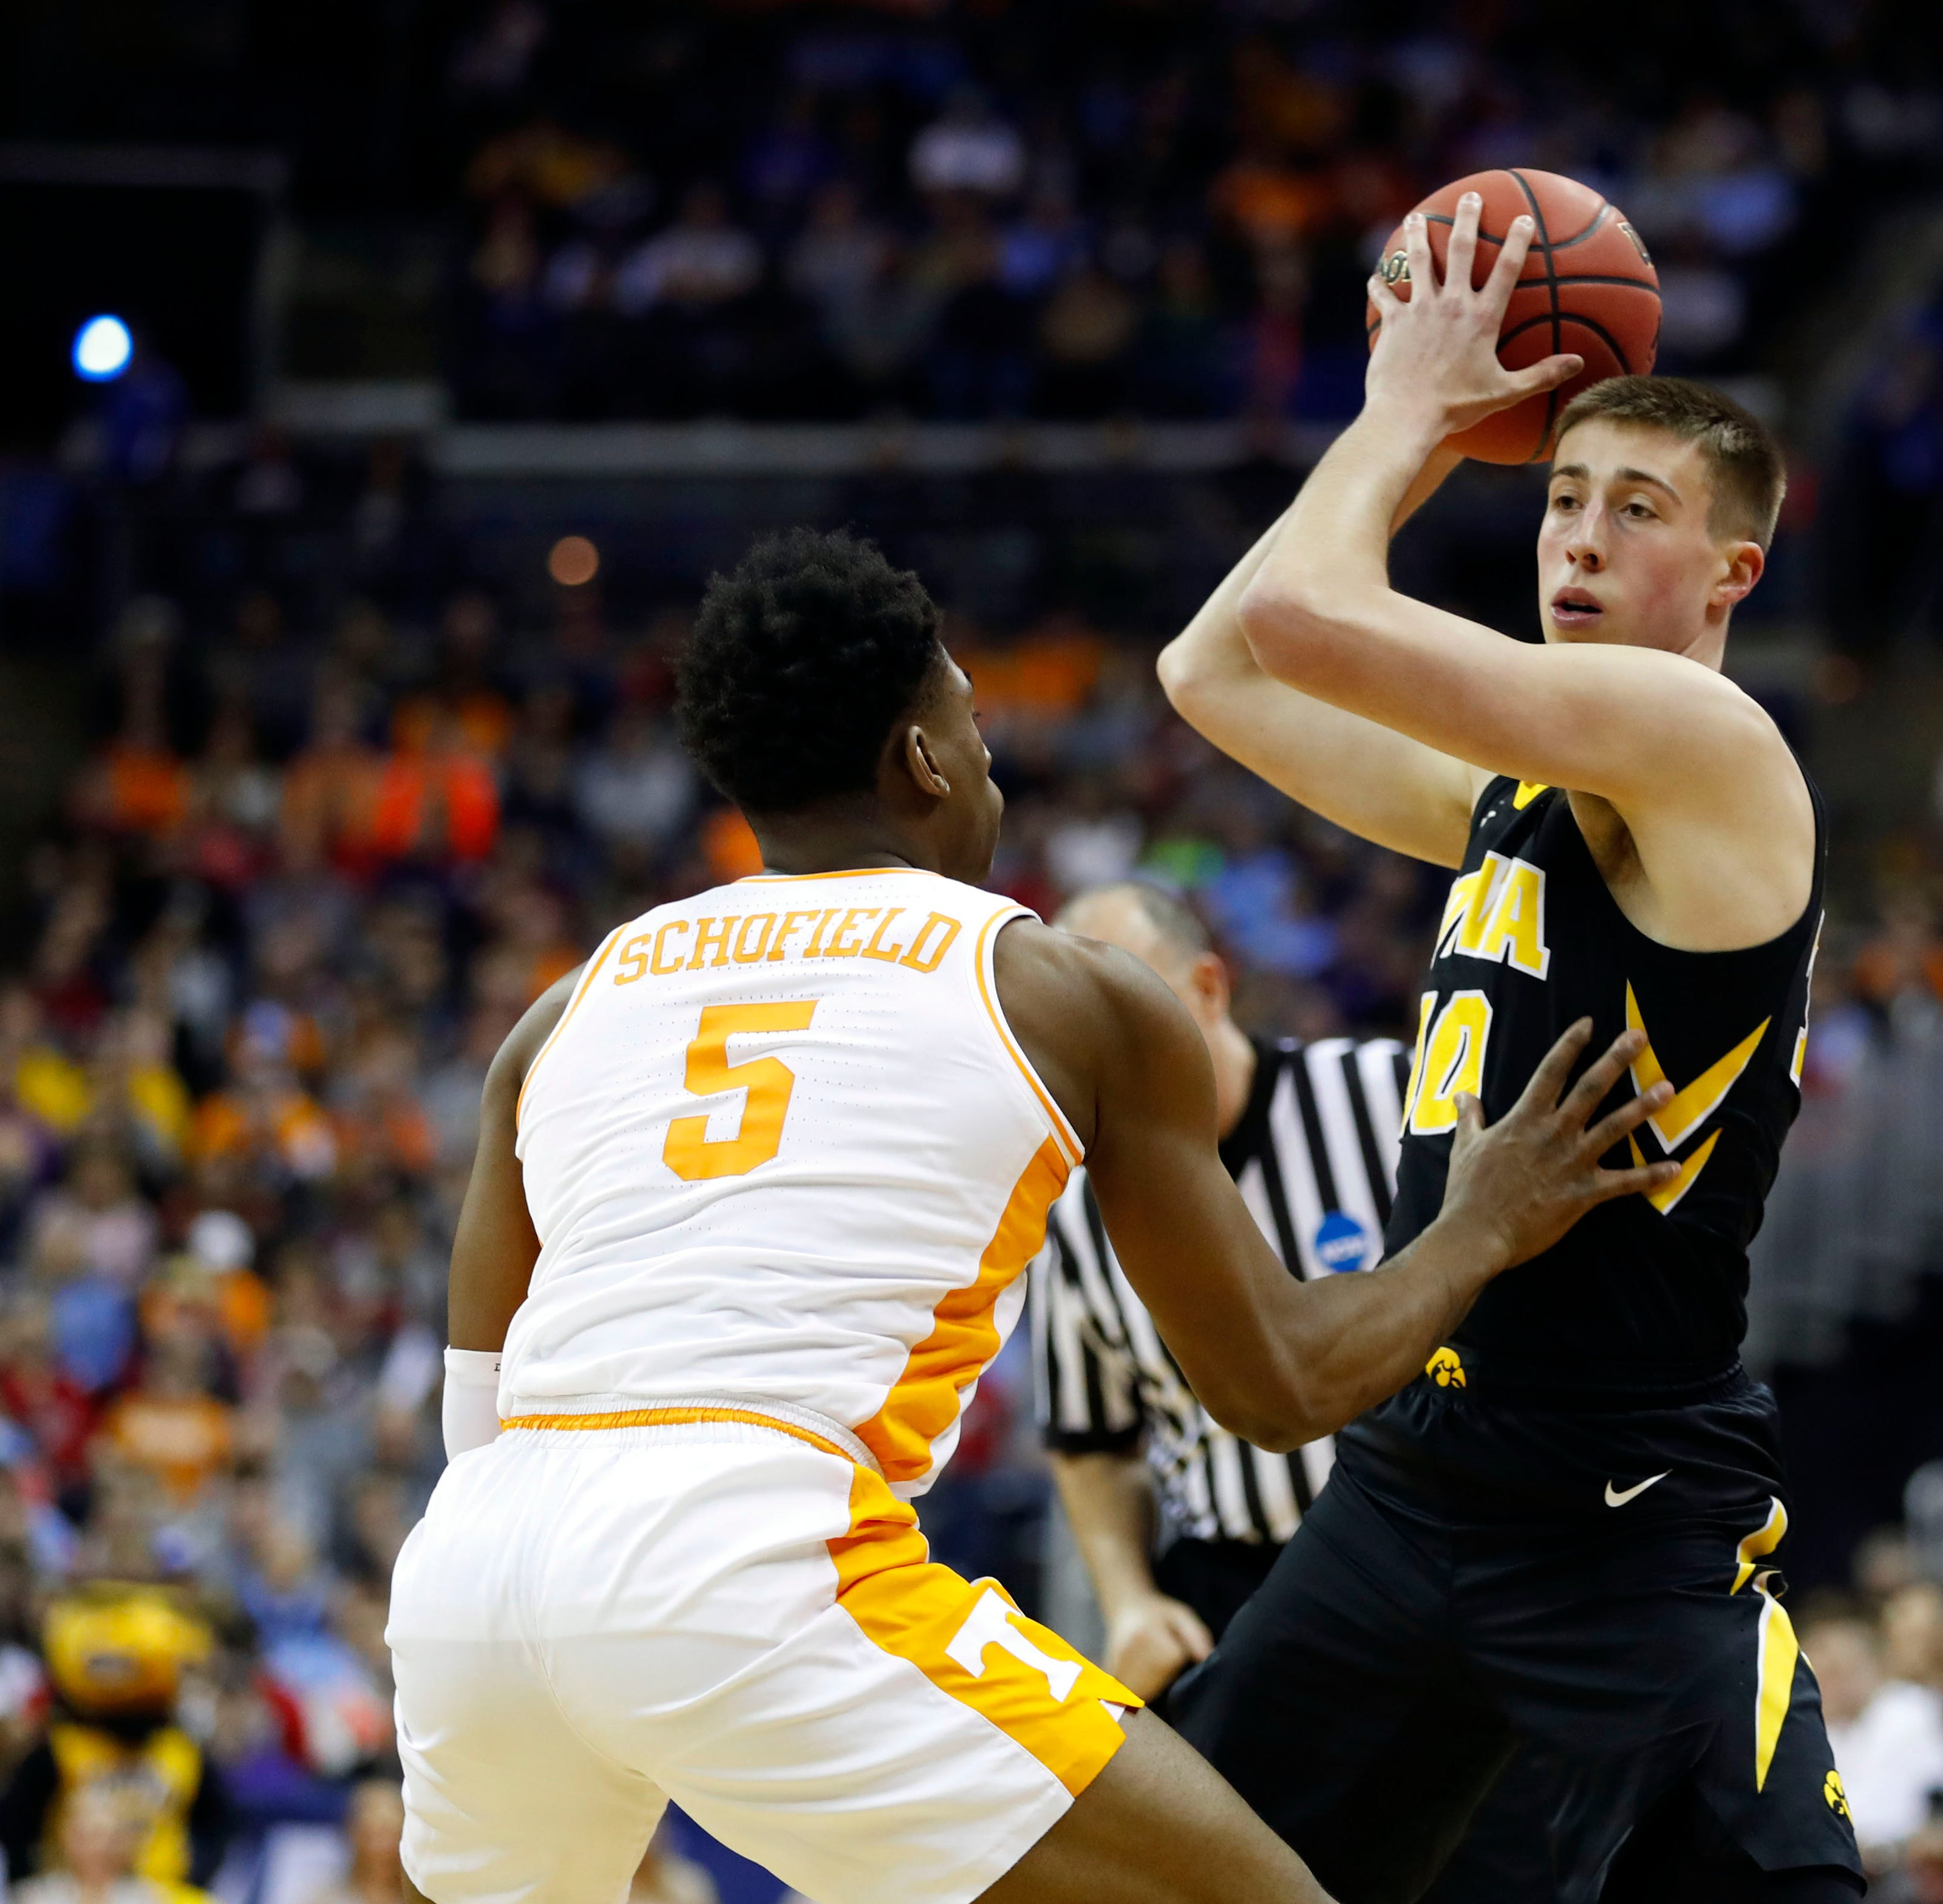 Iowa forward Joe Wieskamp will test NBA Draft process